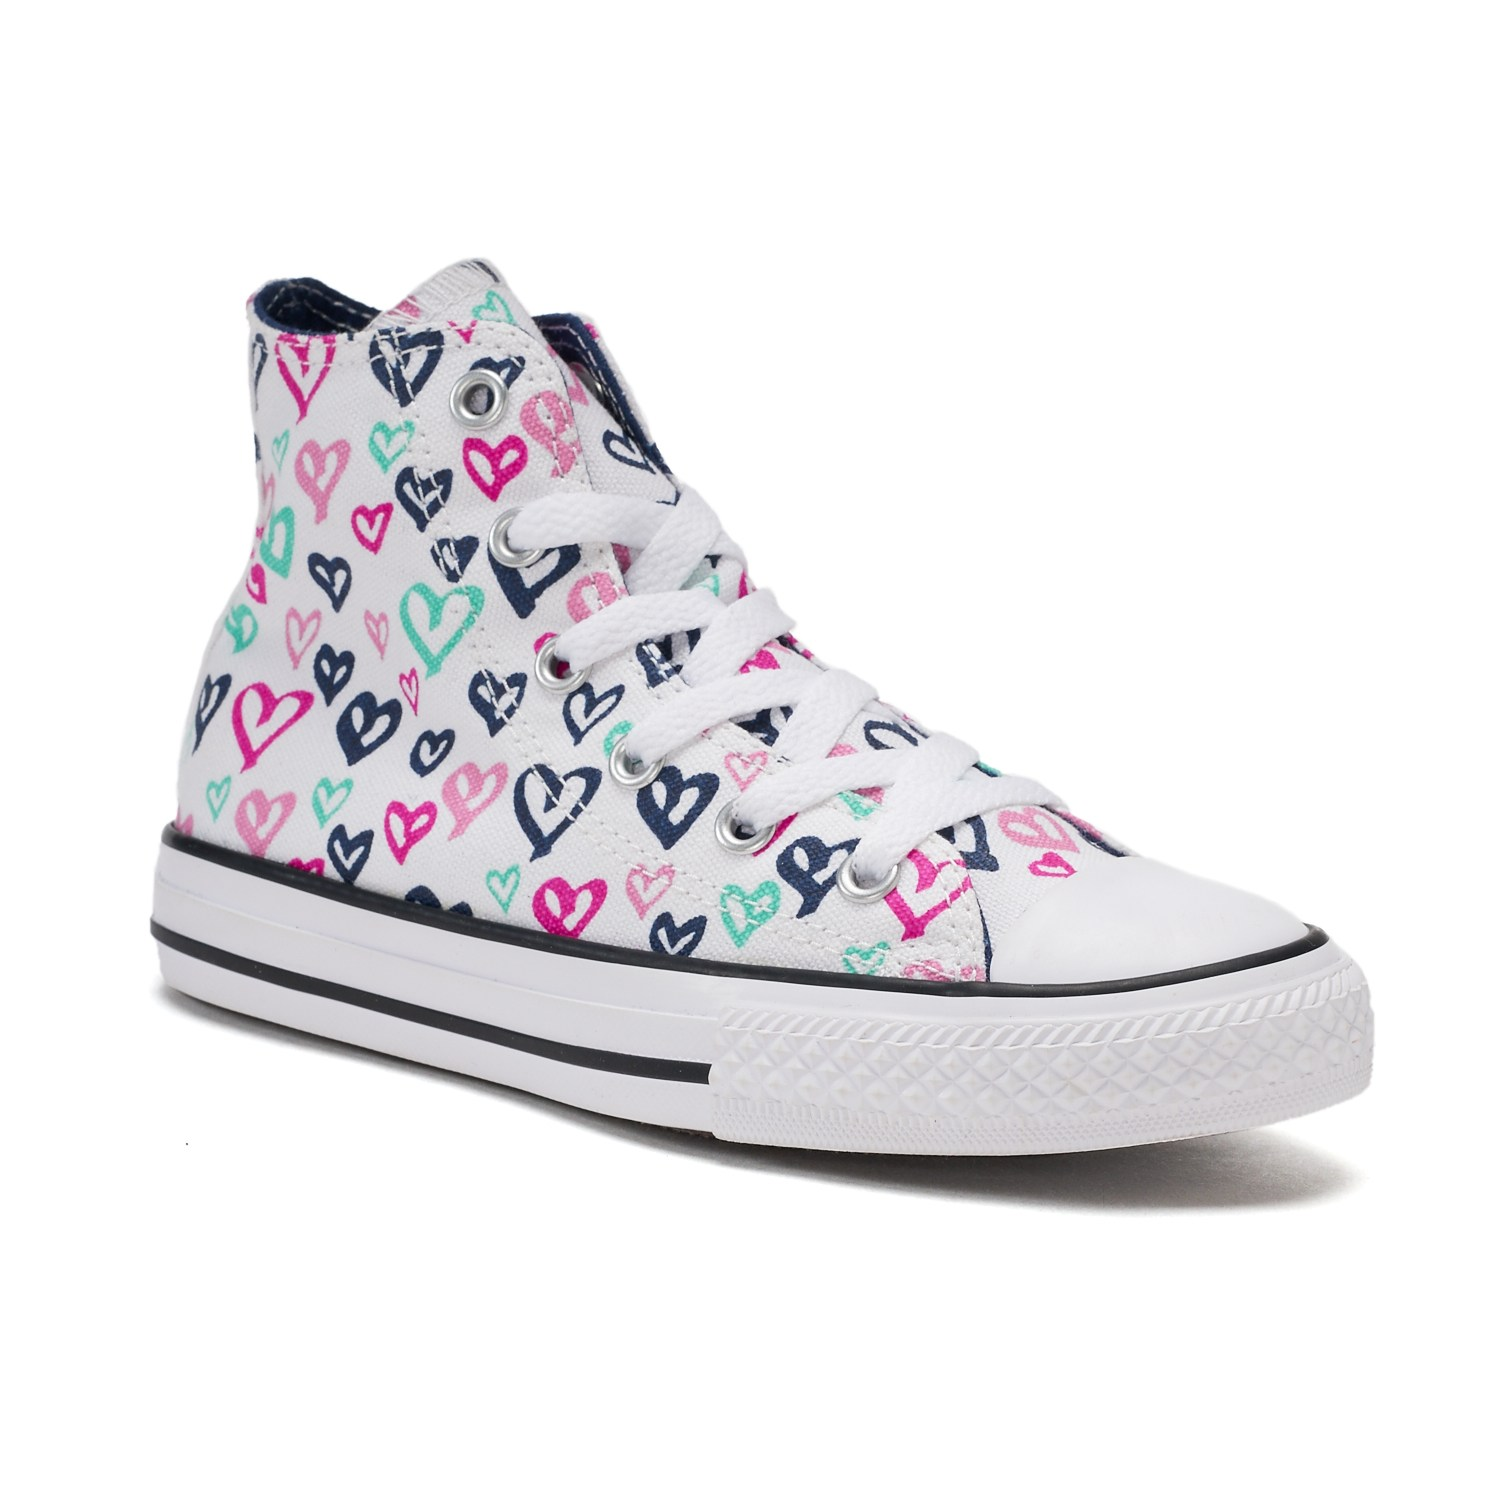 converse for girls girlsu0027 converse chuck taylor all star print high top sneakers UDGNQDP